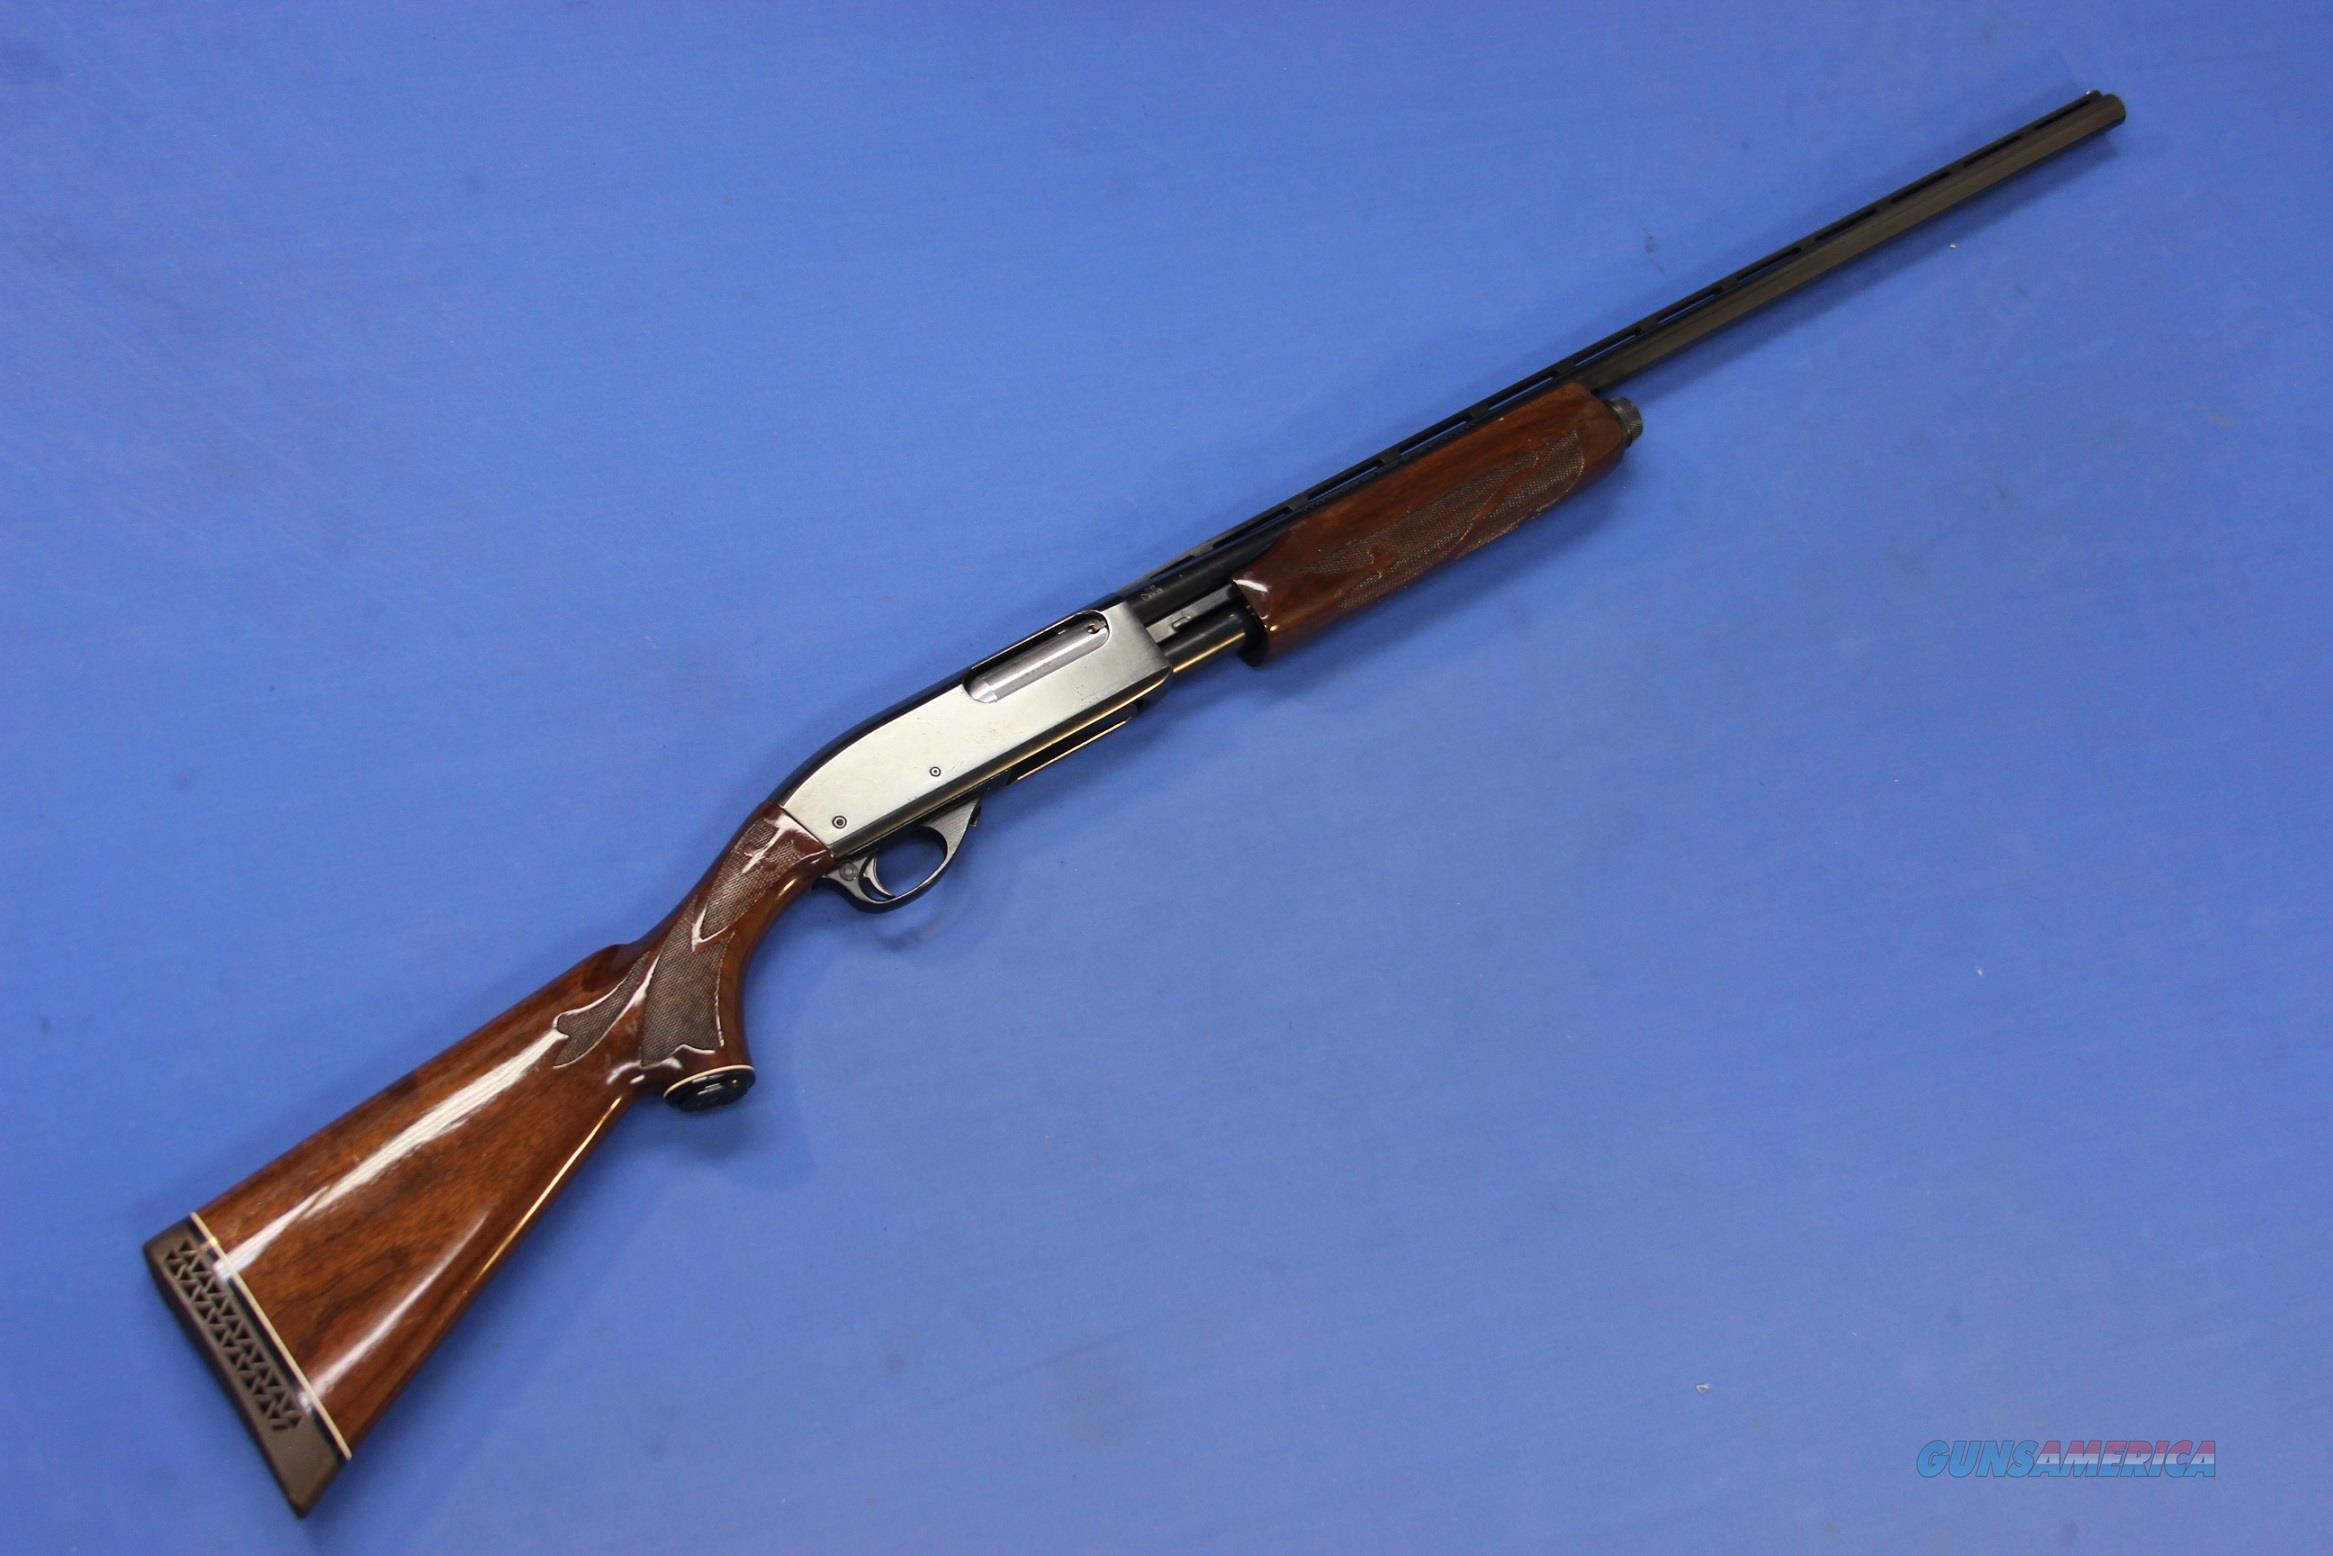 REMINGTON 870 LW MAGNUM WINGMASTER 20 GAUGE   Guns > Shotguns > Remington Shotguns  > Pump > Hunting